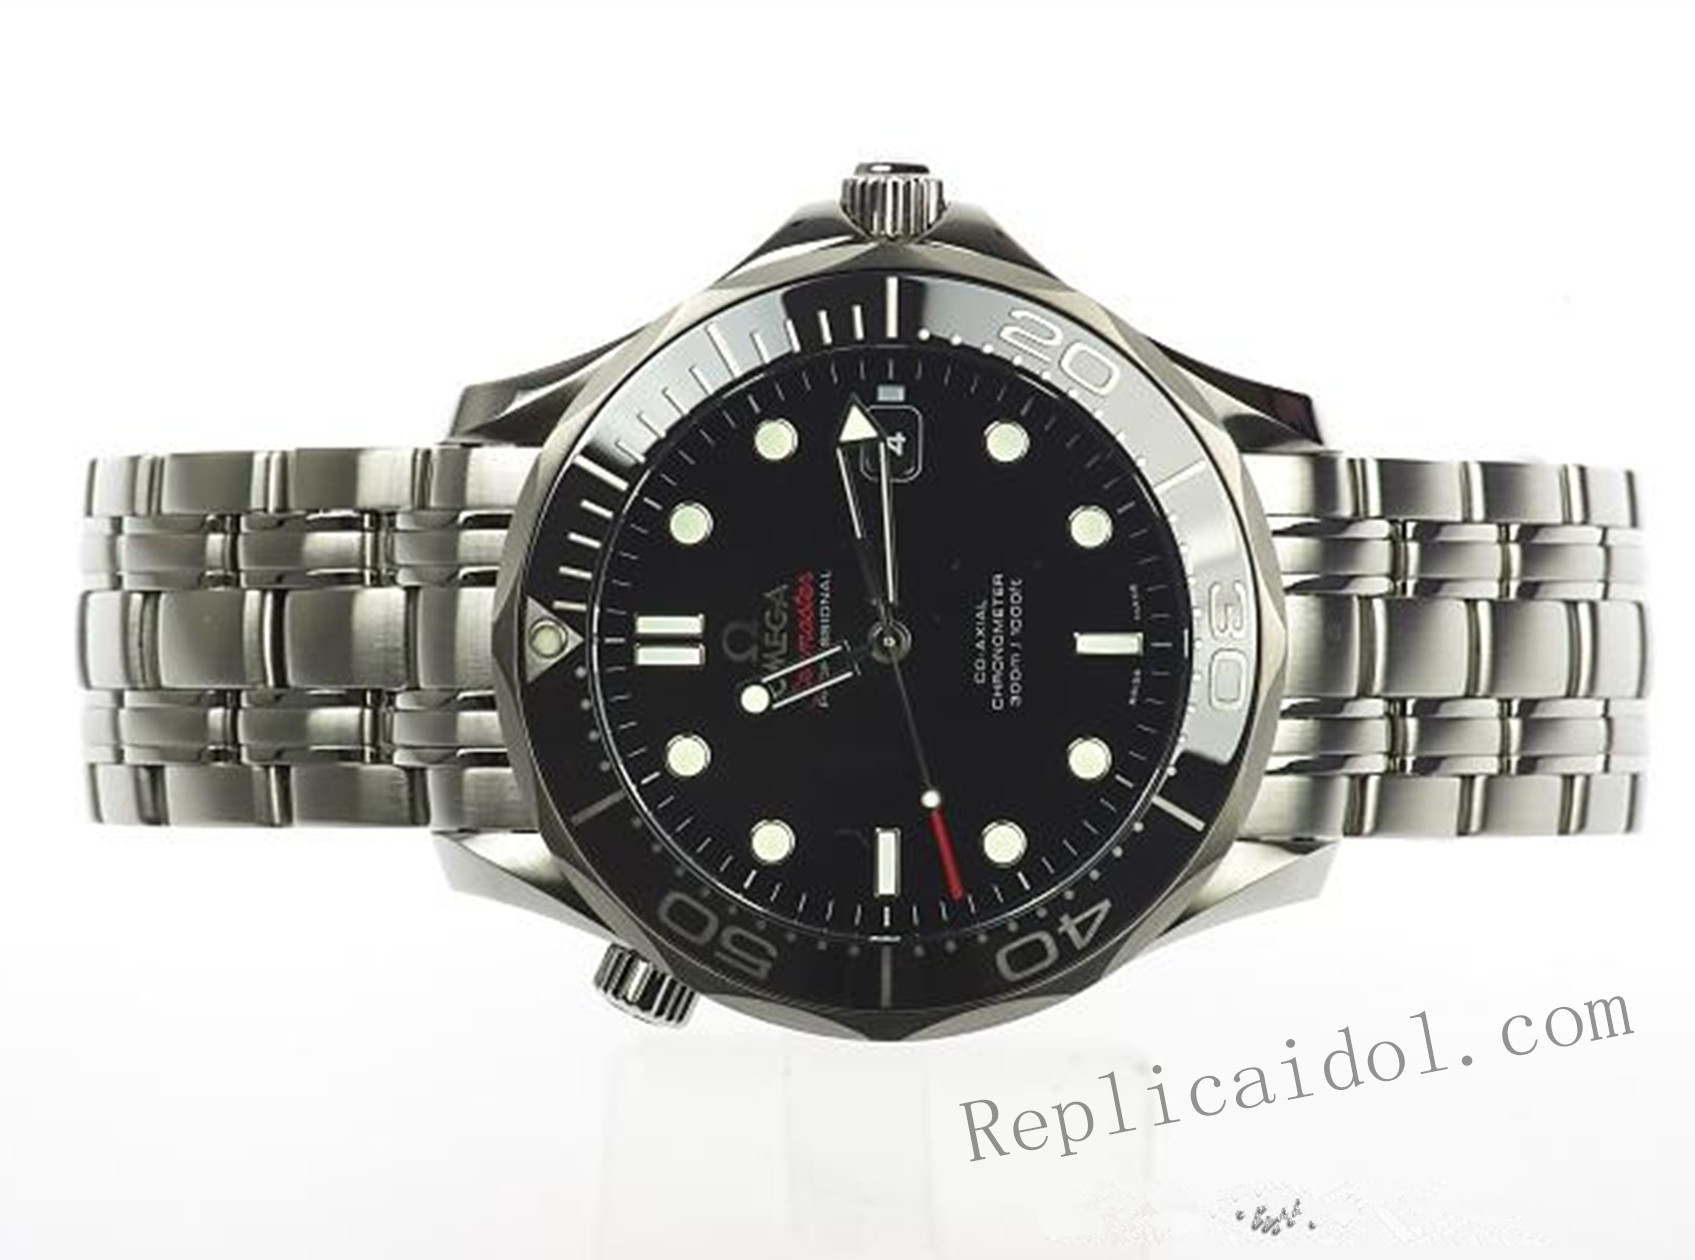 Omega diving watch series replica - Omega dive watch ...